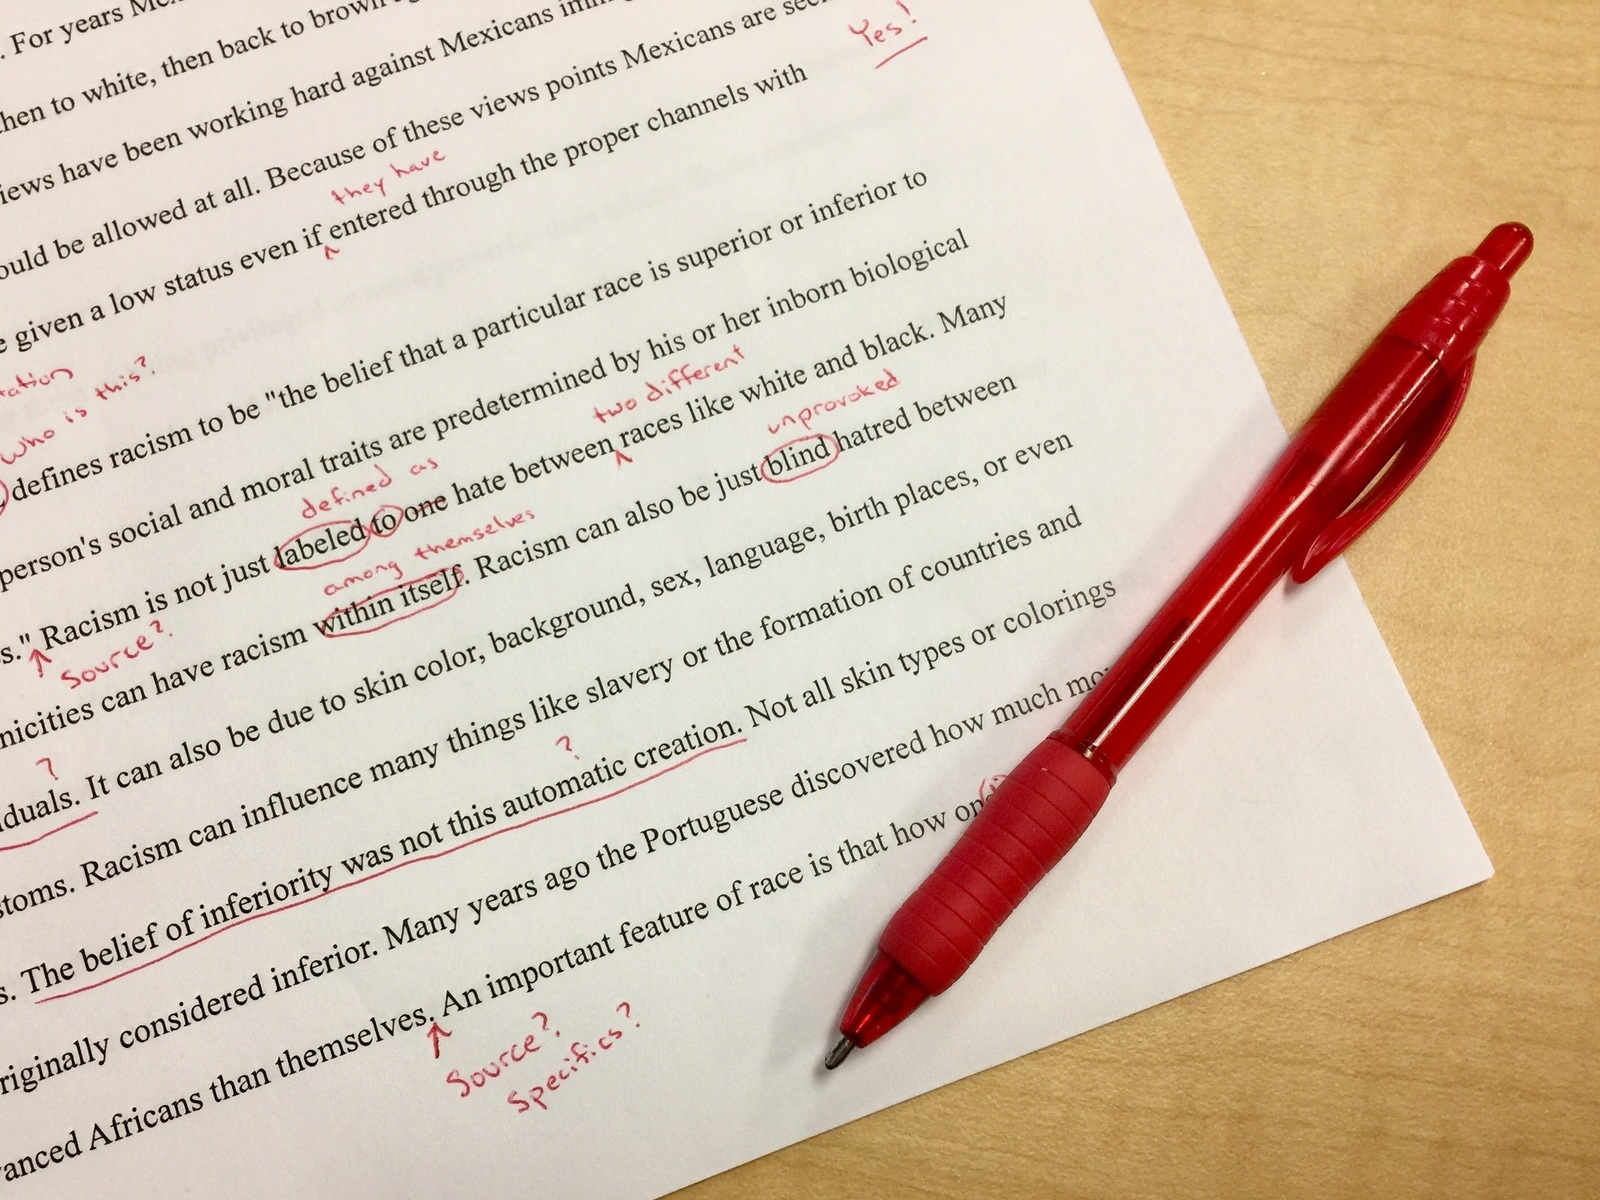 QBS Learning offers copyediting services to ensure a manuscript free of any grammatical, punctuation or syntax errors.